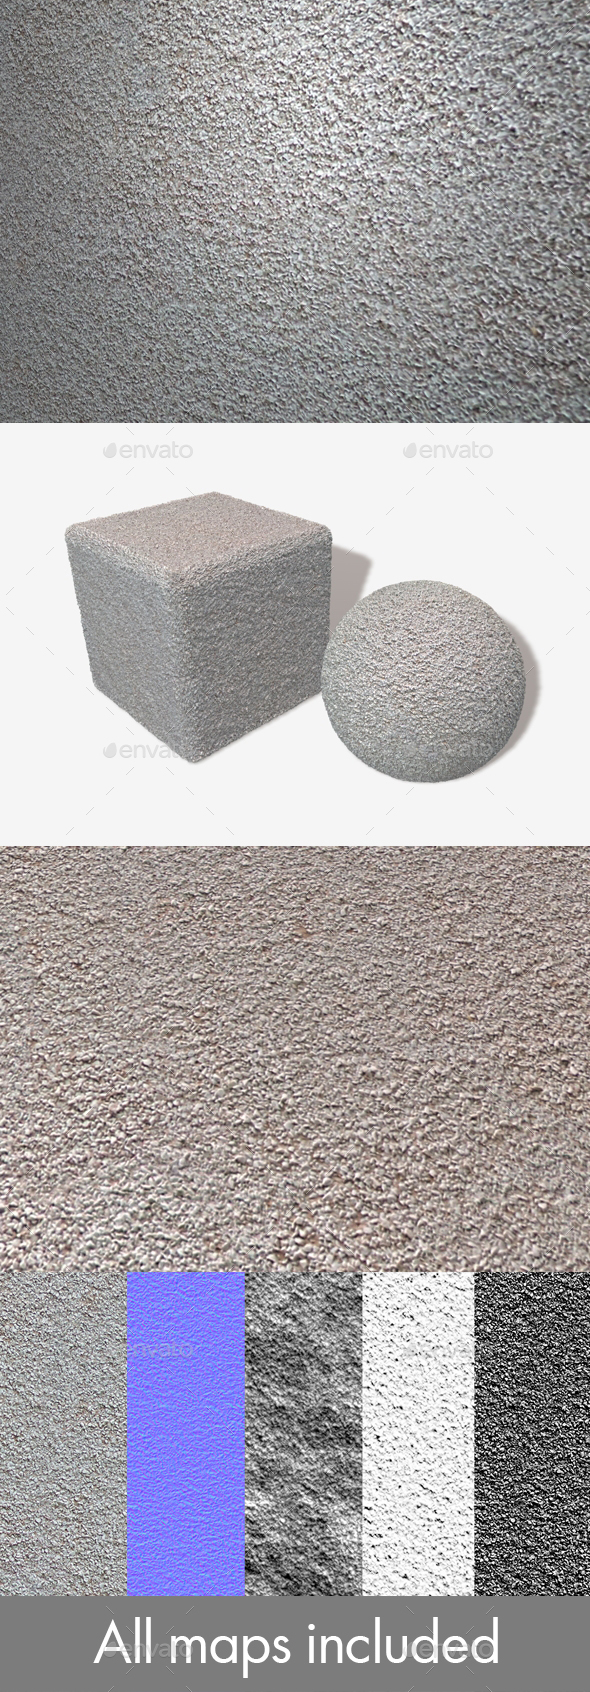 Textured Wall Seamless Texture - 3DOcean Item for Sale